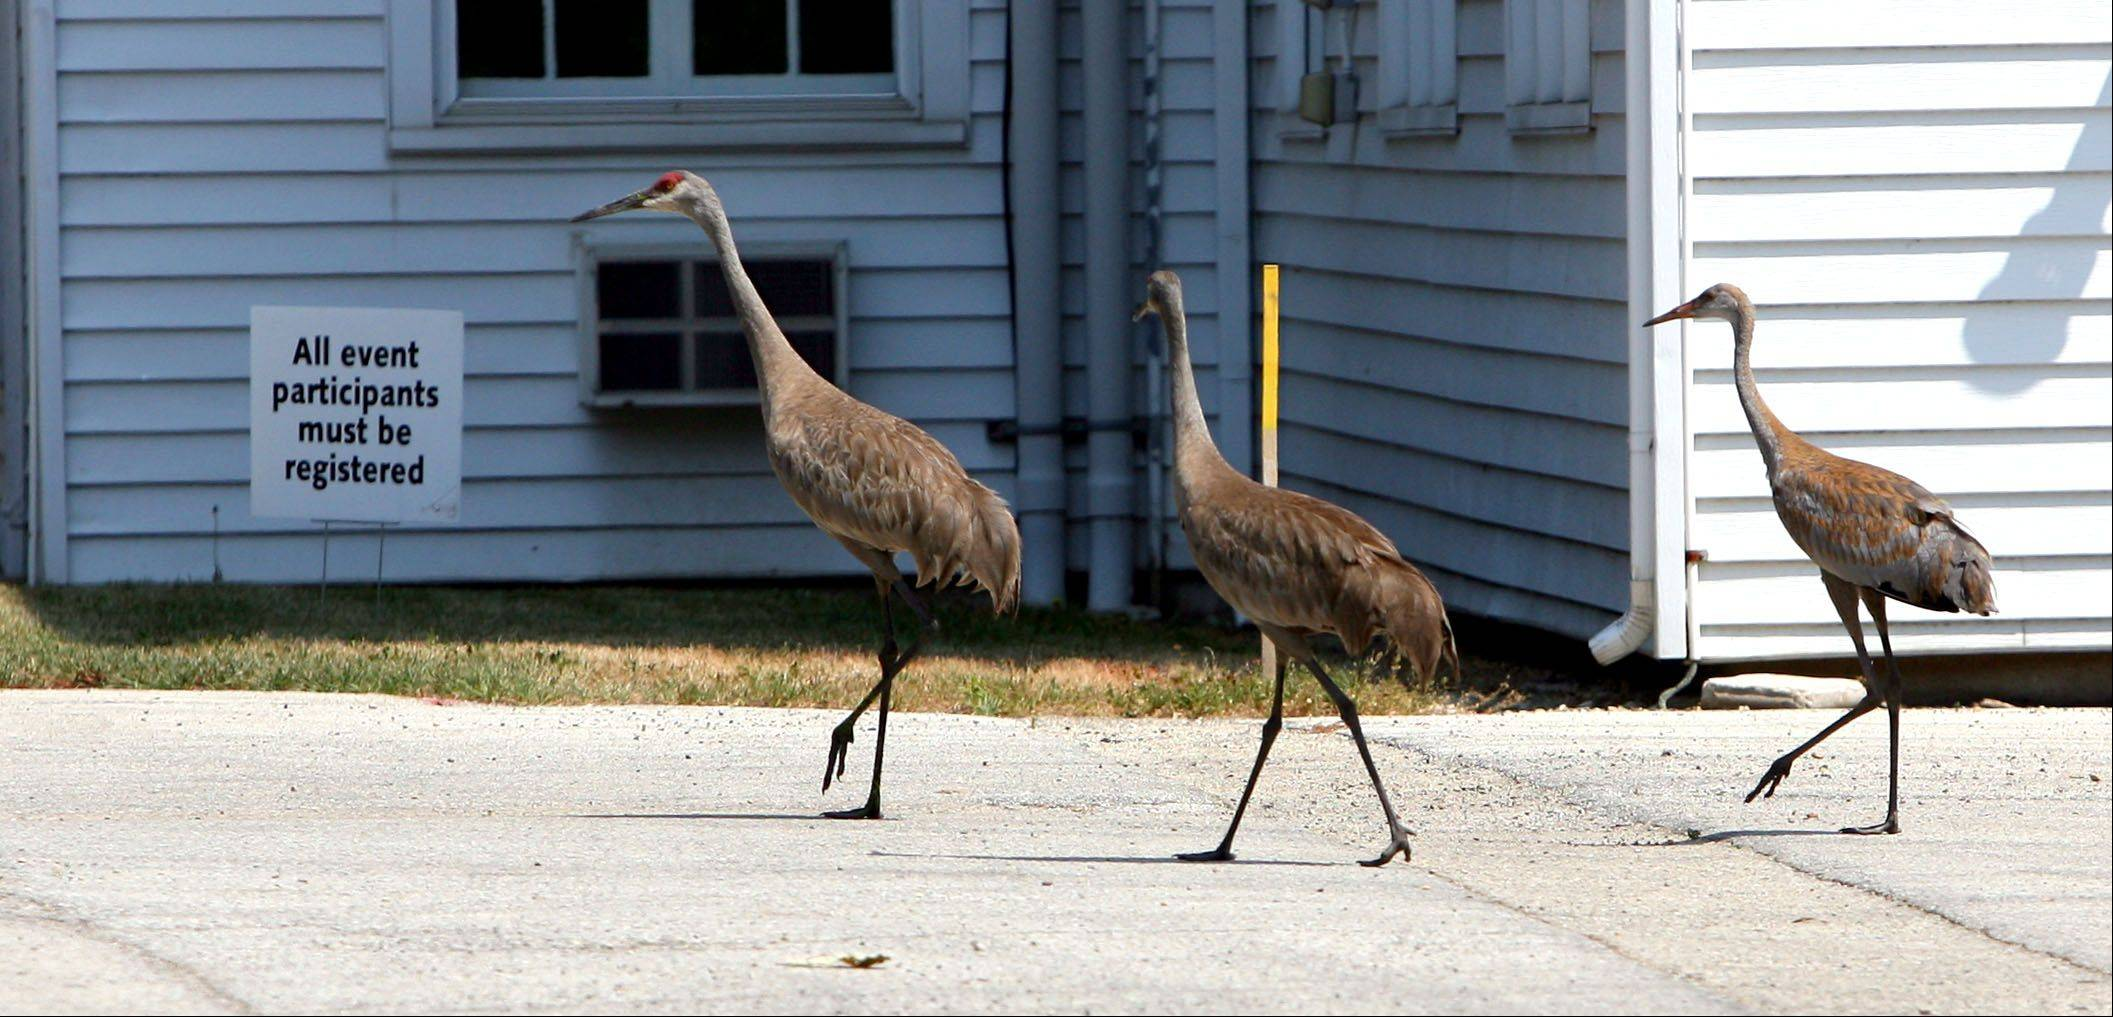 A group of Sandhill Cranes wander through the grounds of Lakewood Forest Preserve near Wauconda.